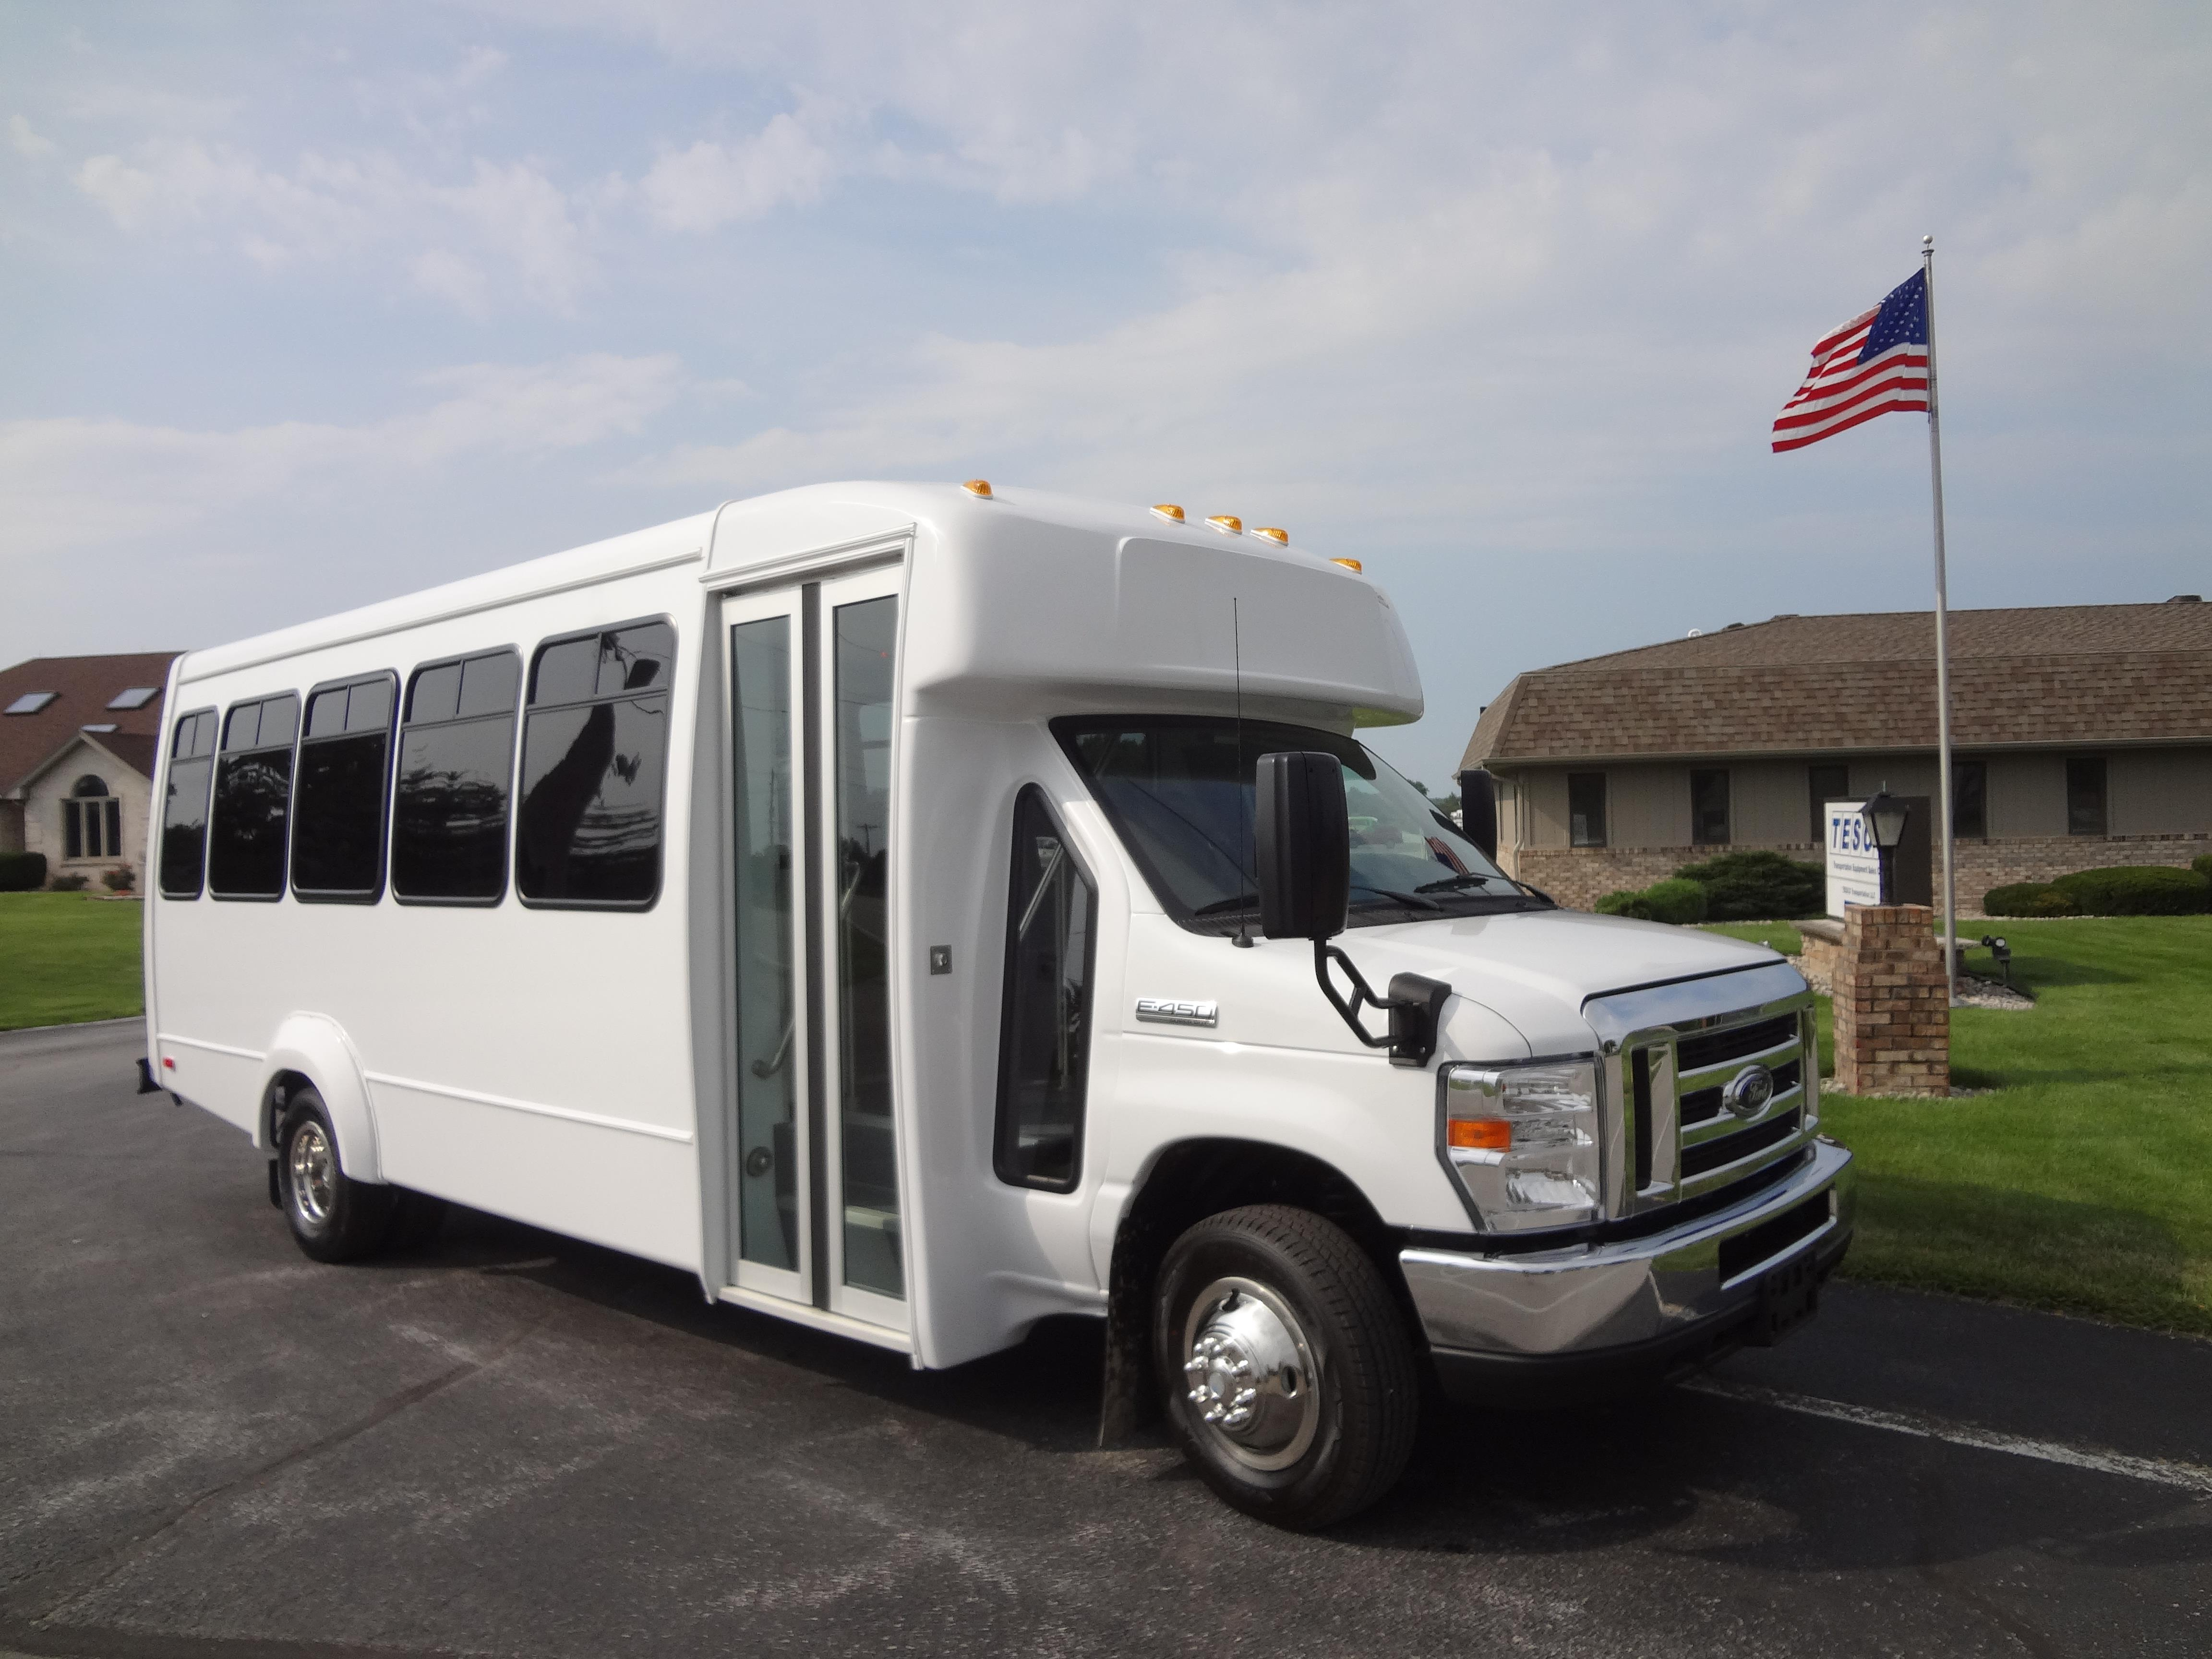 2018 Elkhart Coach ECII Ford 25 Passengers and 0 Wheelchairs